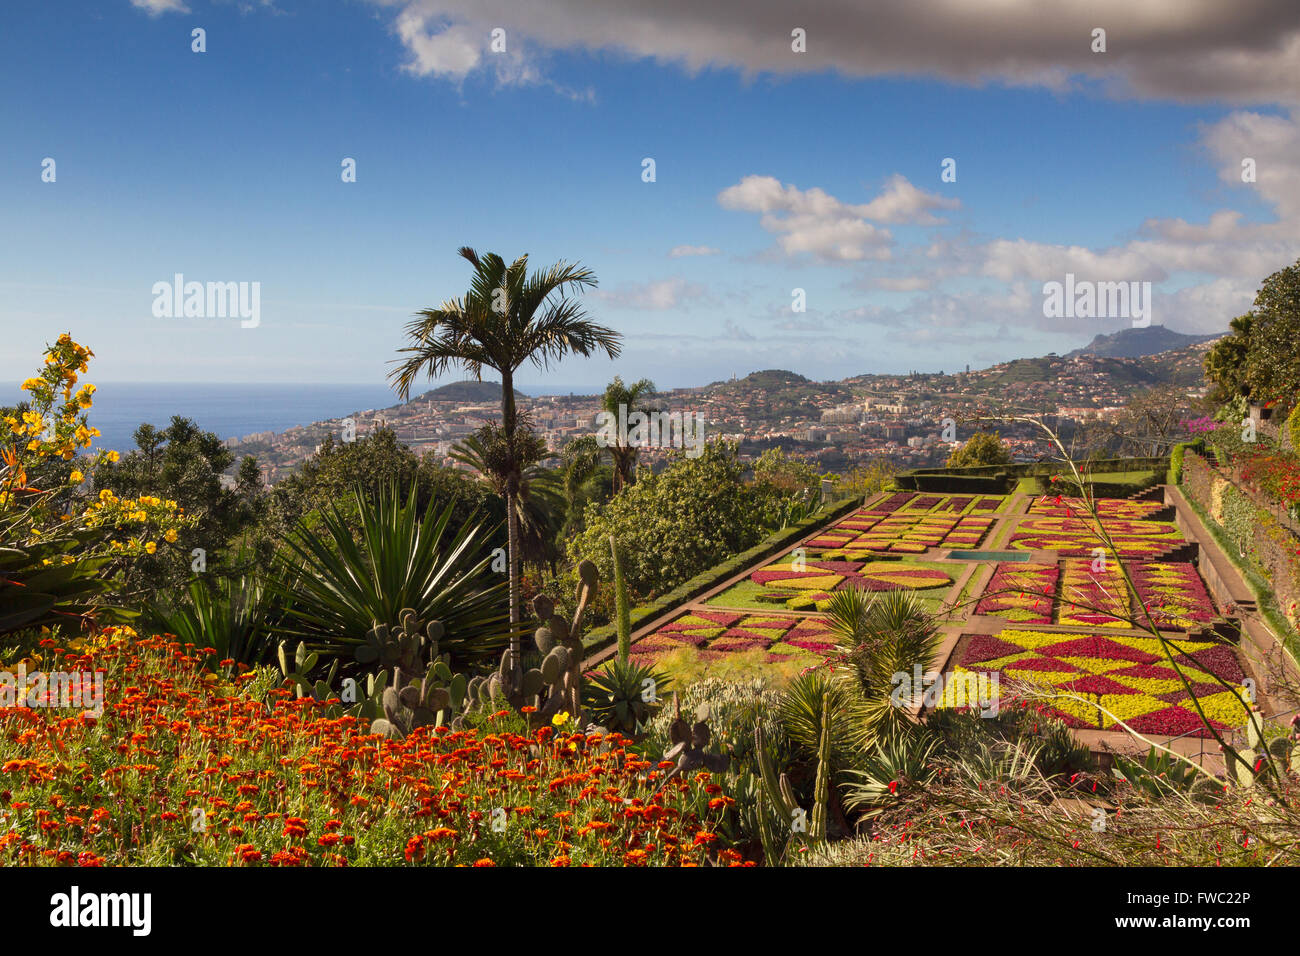 Botanical garden of Funchal, Madeira, Portugal - Stock Image